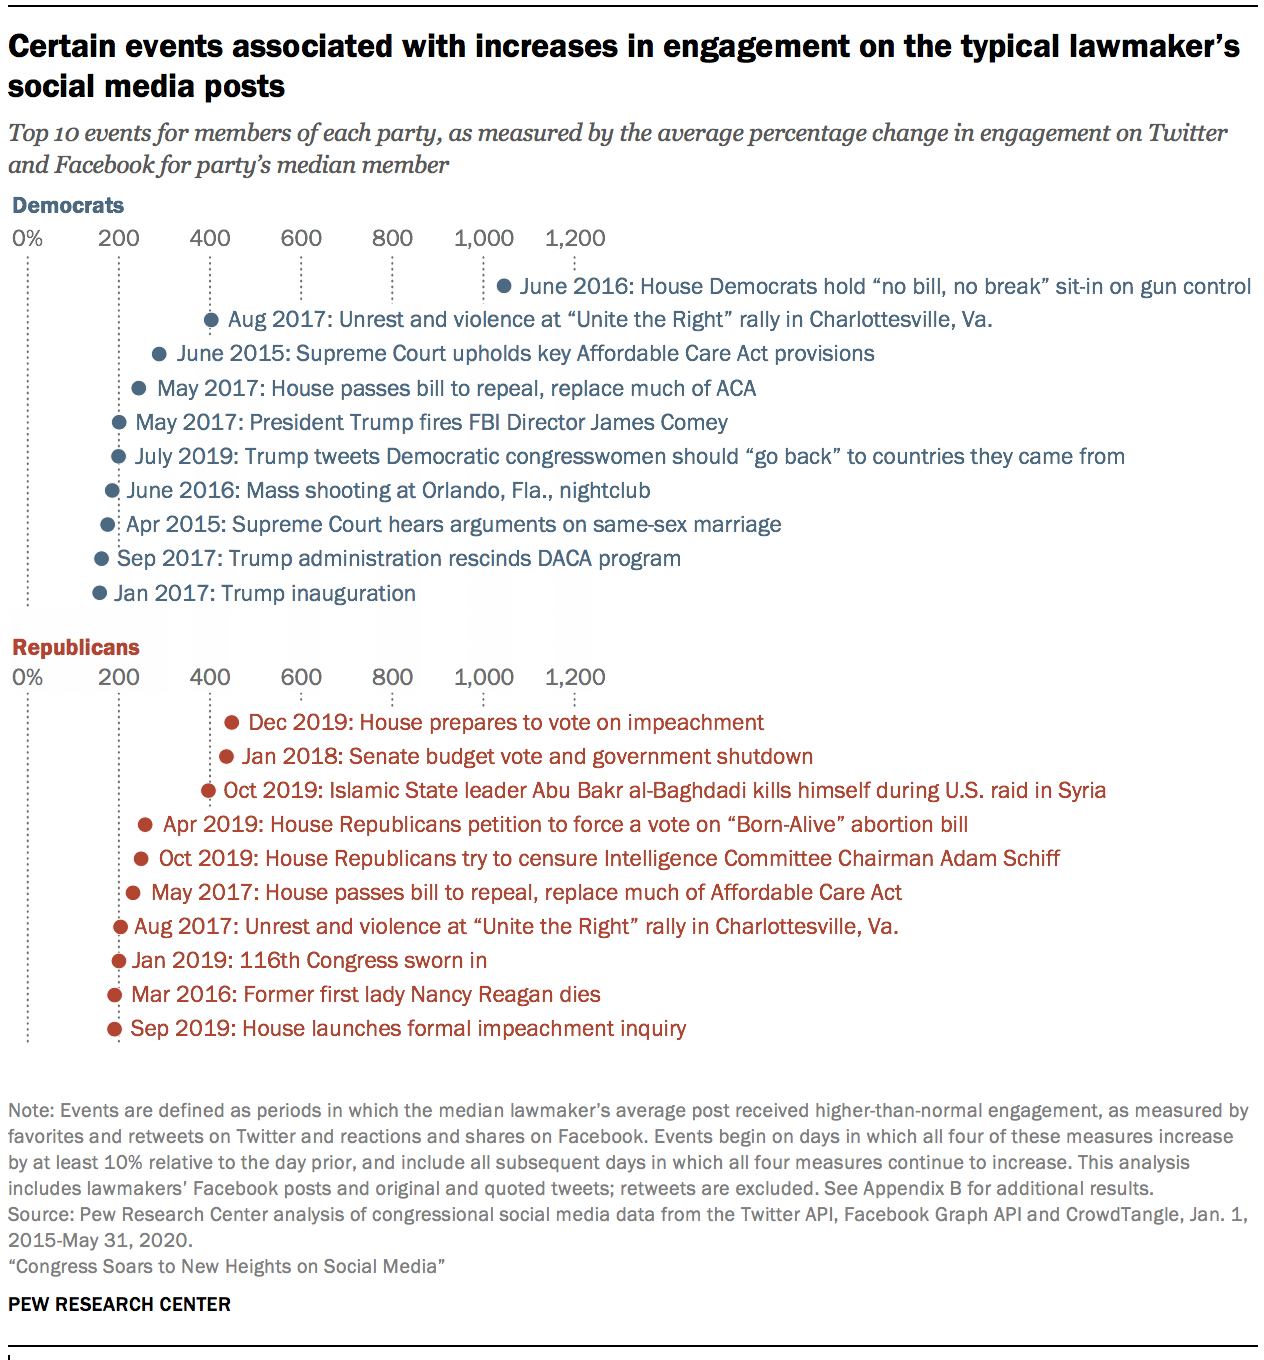 Certain events associated with increases in engagement on the typical lawmaker's social media posts